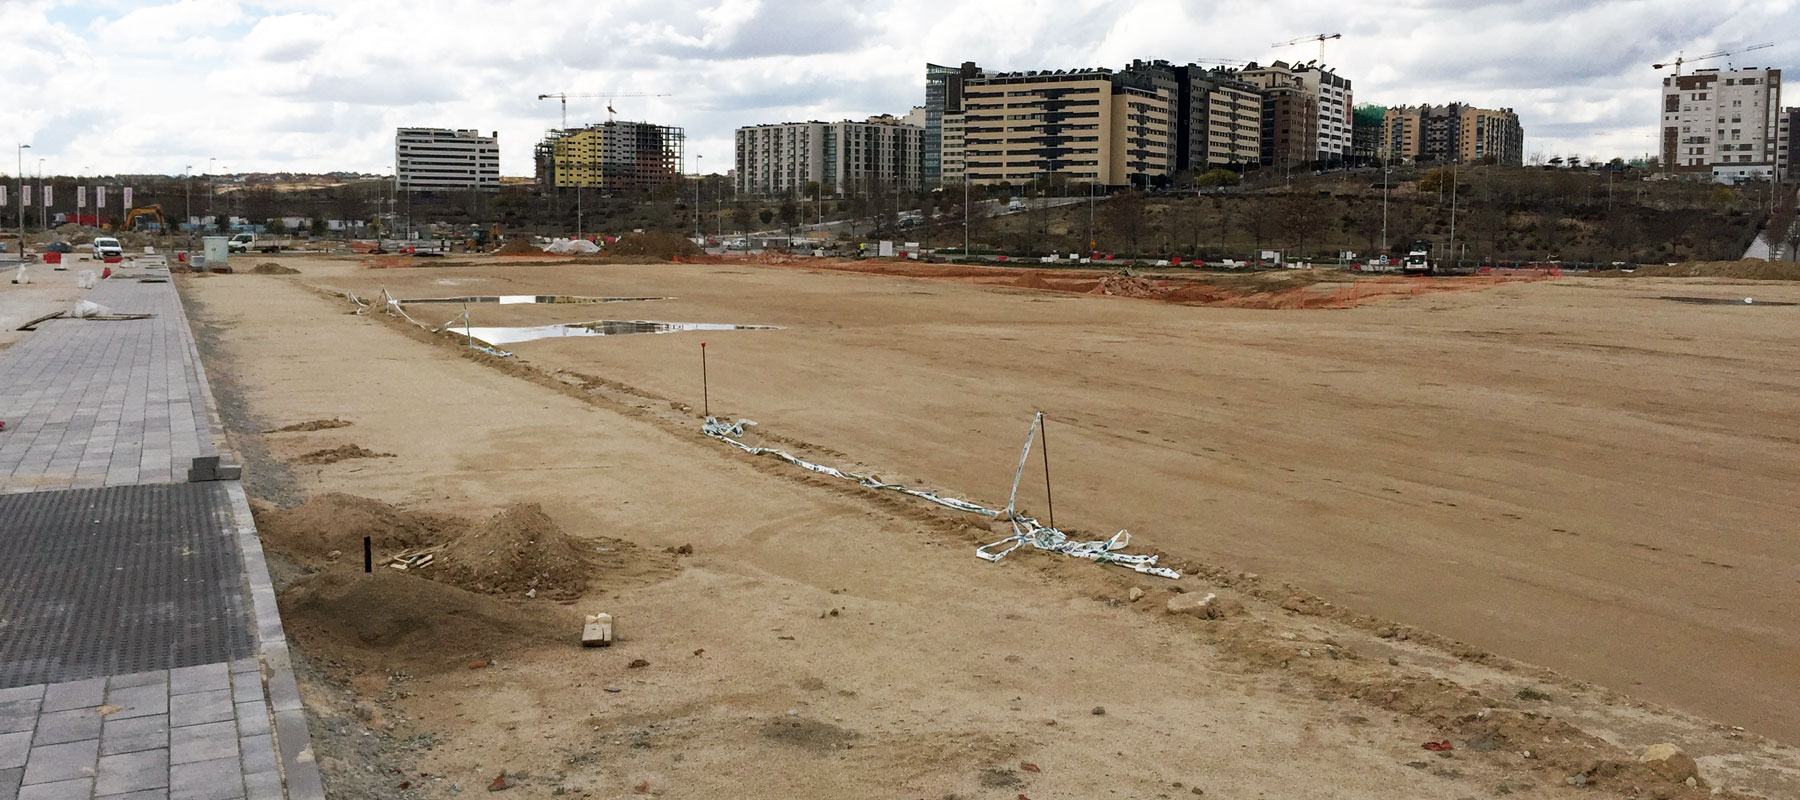 Park construction suspended in areas affected by court ruling annuling Valdebebas Special Plan.